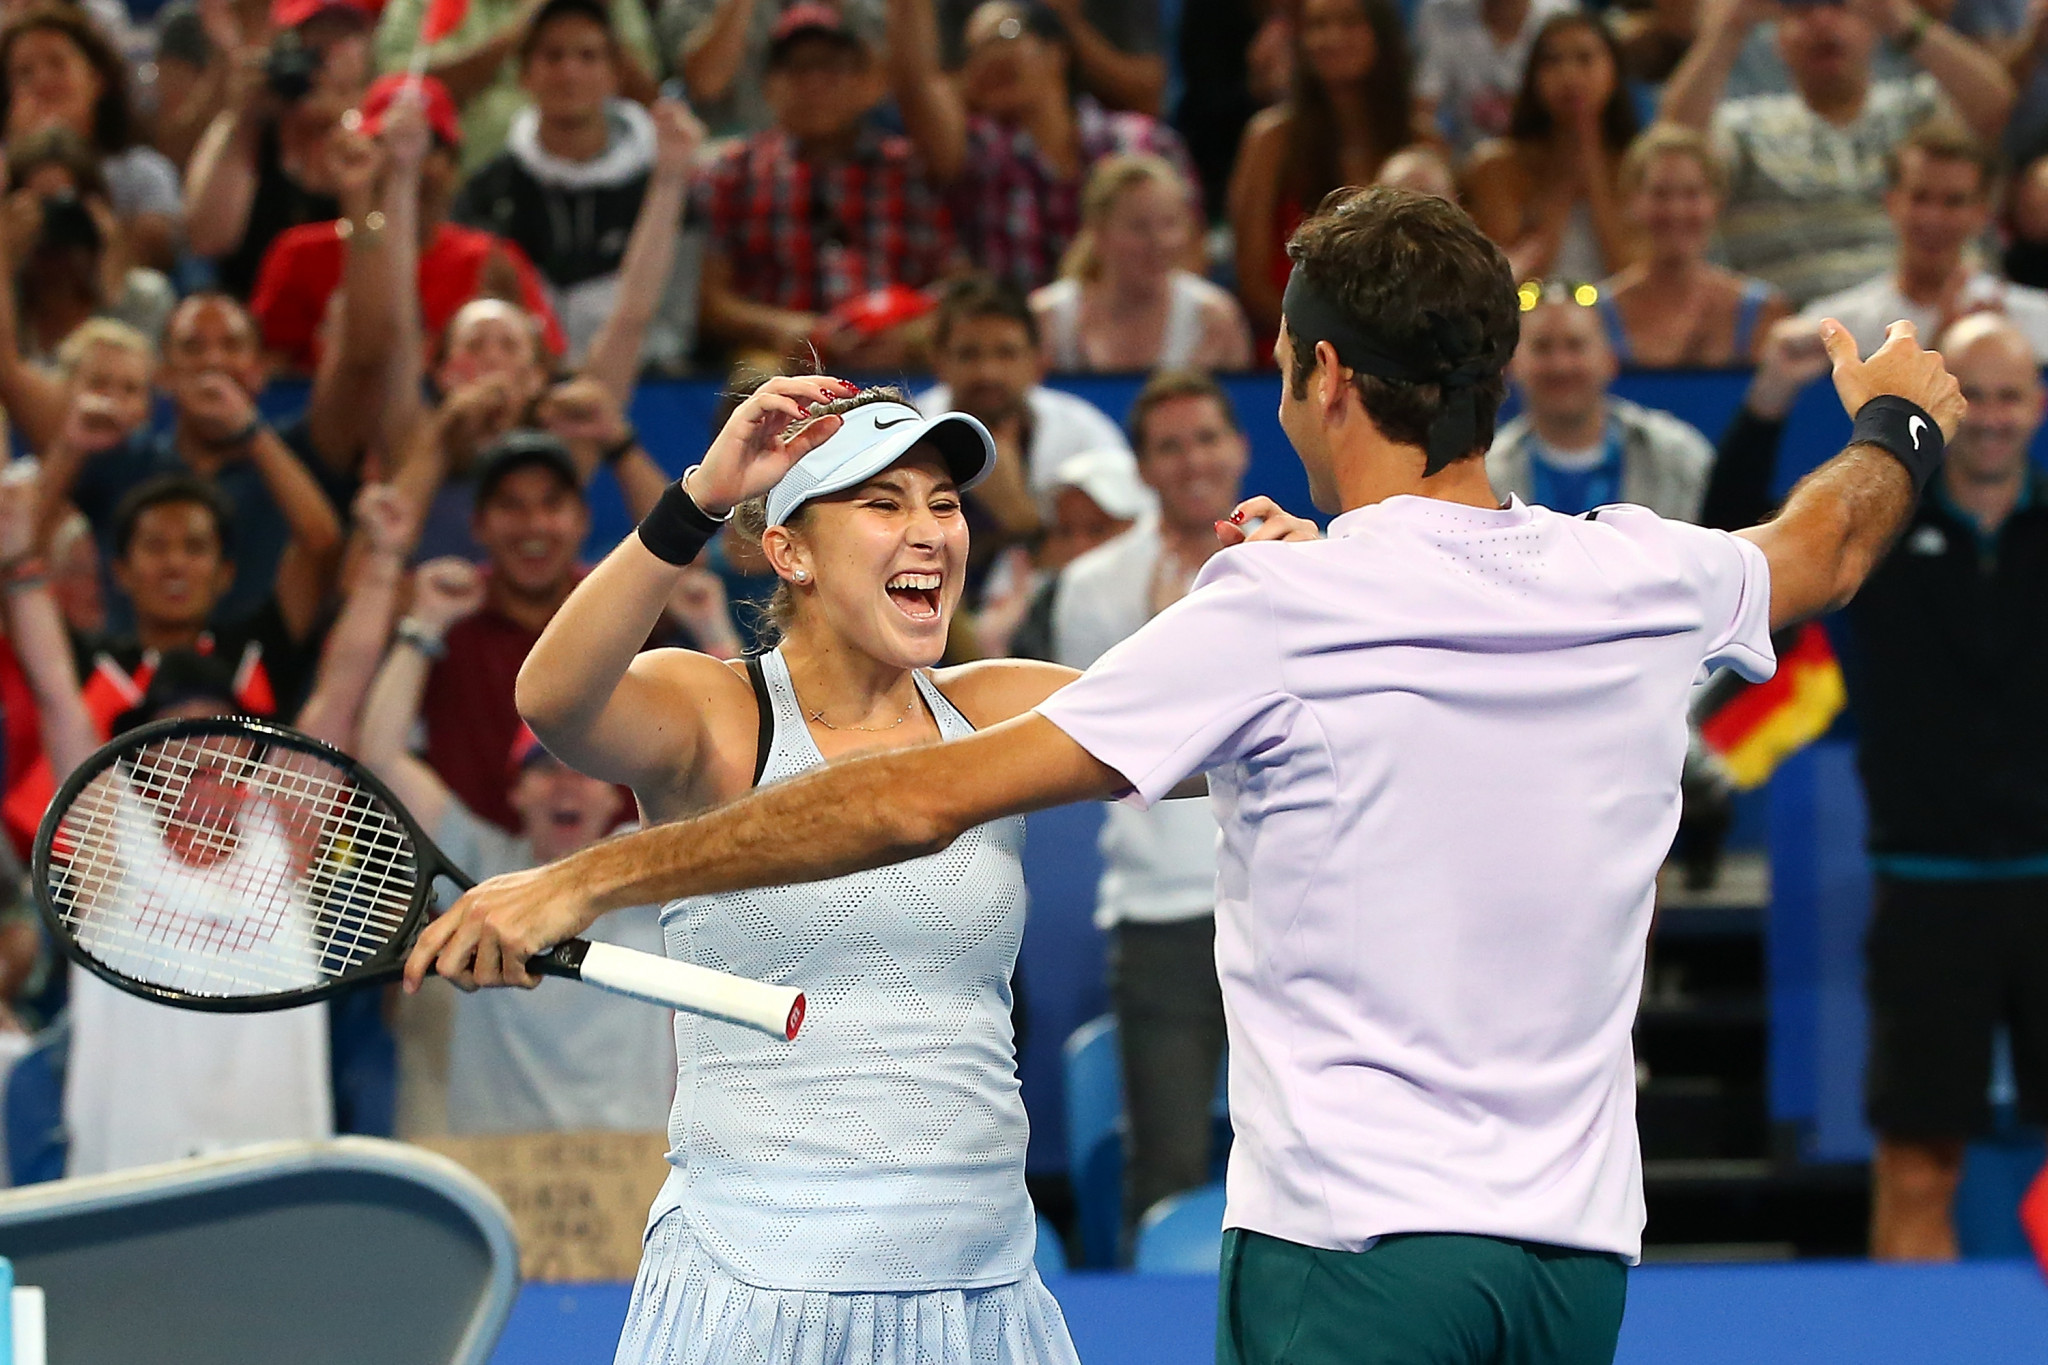 Bencic and Federer beat Zverev and Kerber 4-3, 4-2 in the Fast4 mixed doubles final to clinch the trophy ©Getty Images